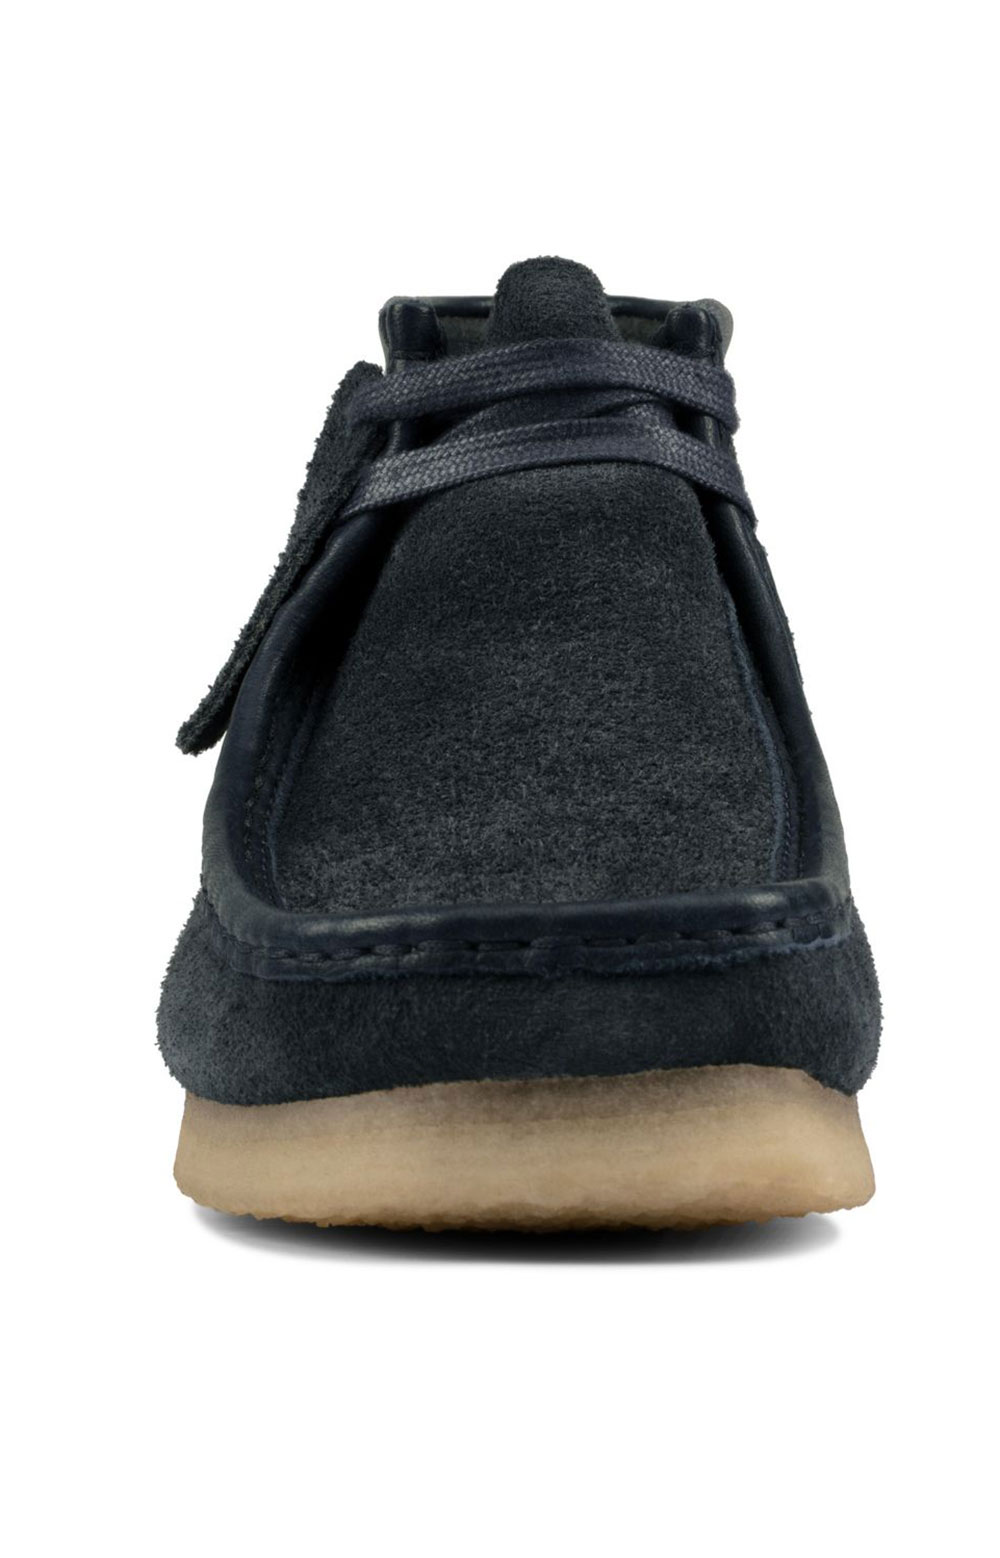 (26155048) Wallabee Boots - Navy Hairy Suede  3